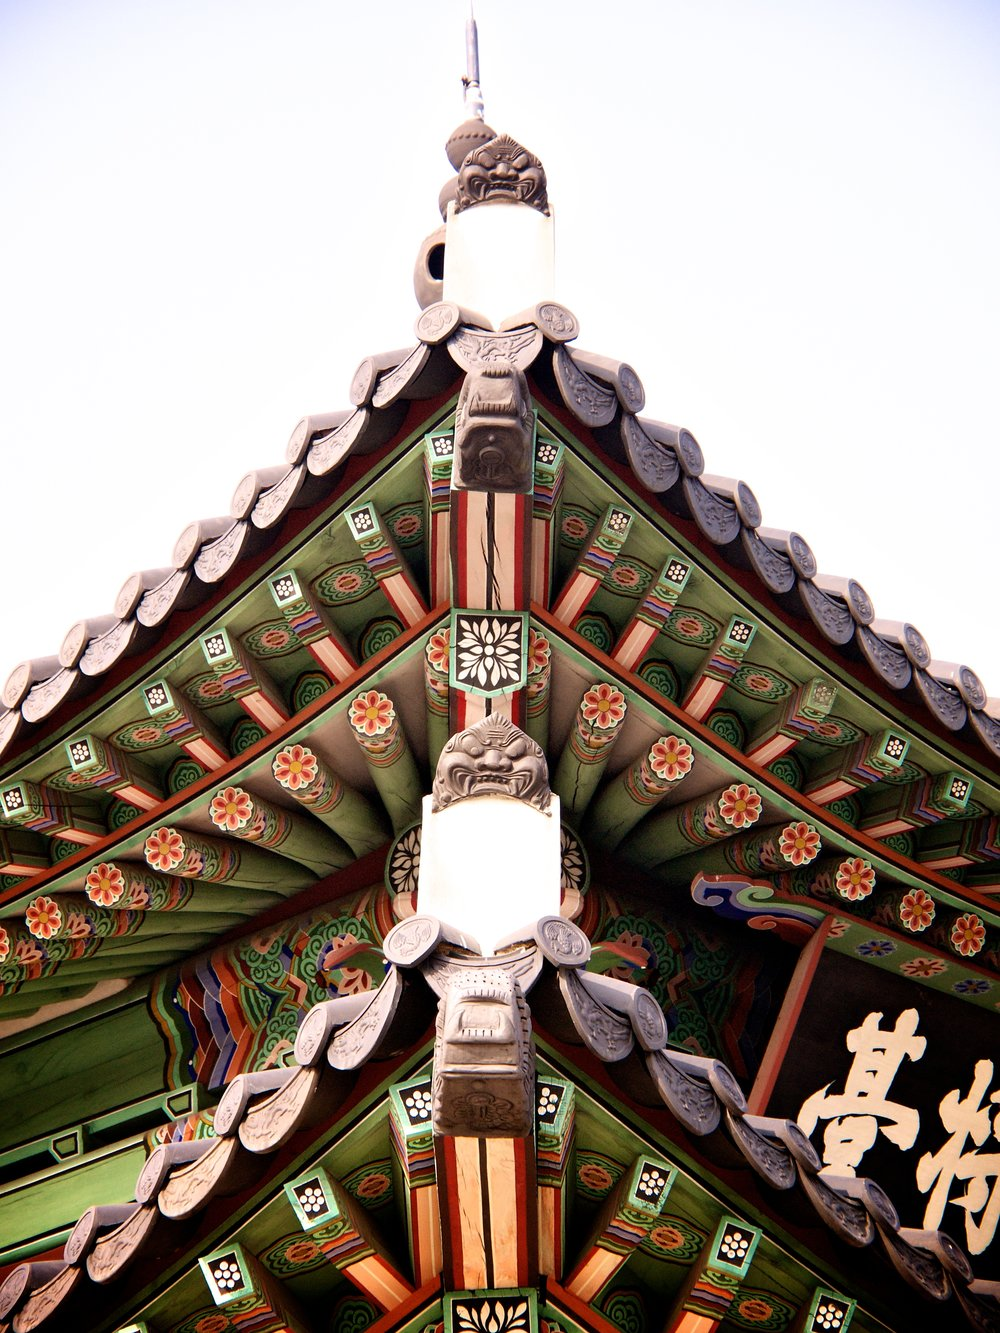 Details on the pagoda, January 2012.